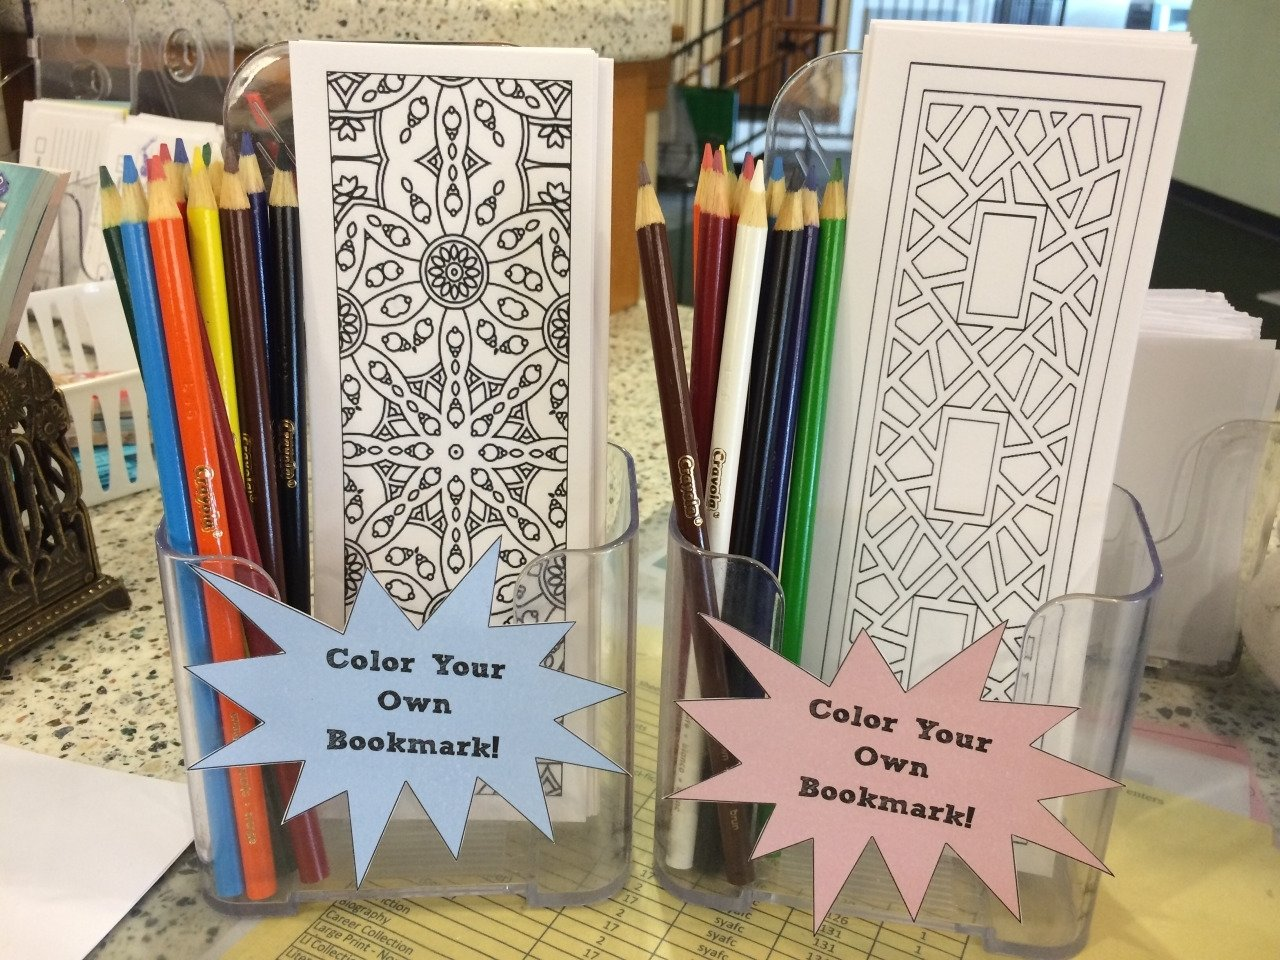 10 Best Fun Contest Ideas For Work thecommonlibrarian robotpancreasattack made some bookmarks at work 2021